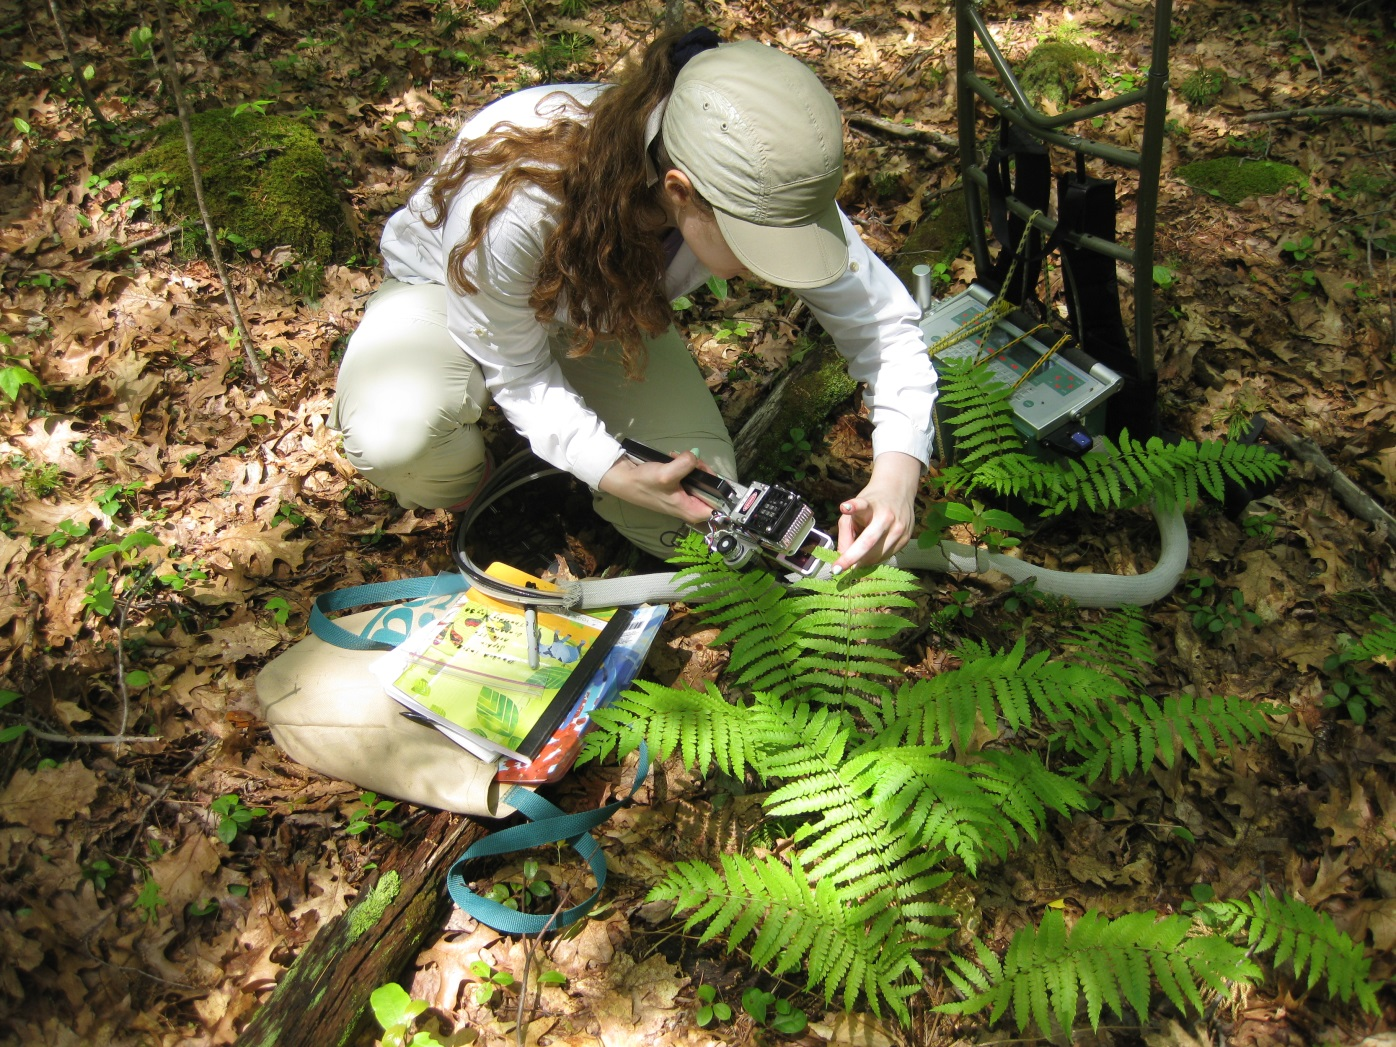 [Measuring a cinnamon fern in one of the plots using the Li-Cor 6400XT Portable Photosynthesis System.]